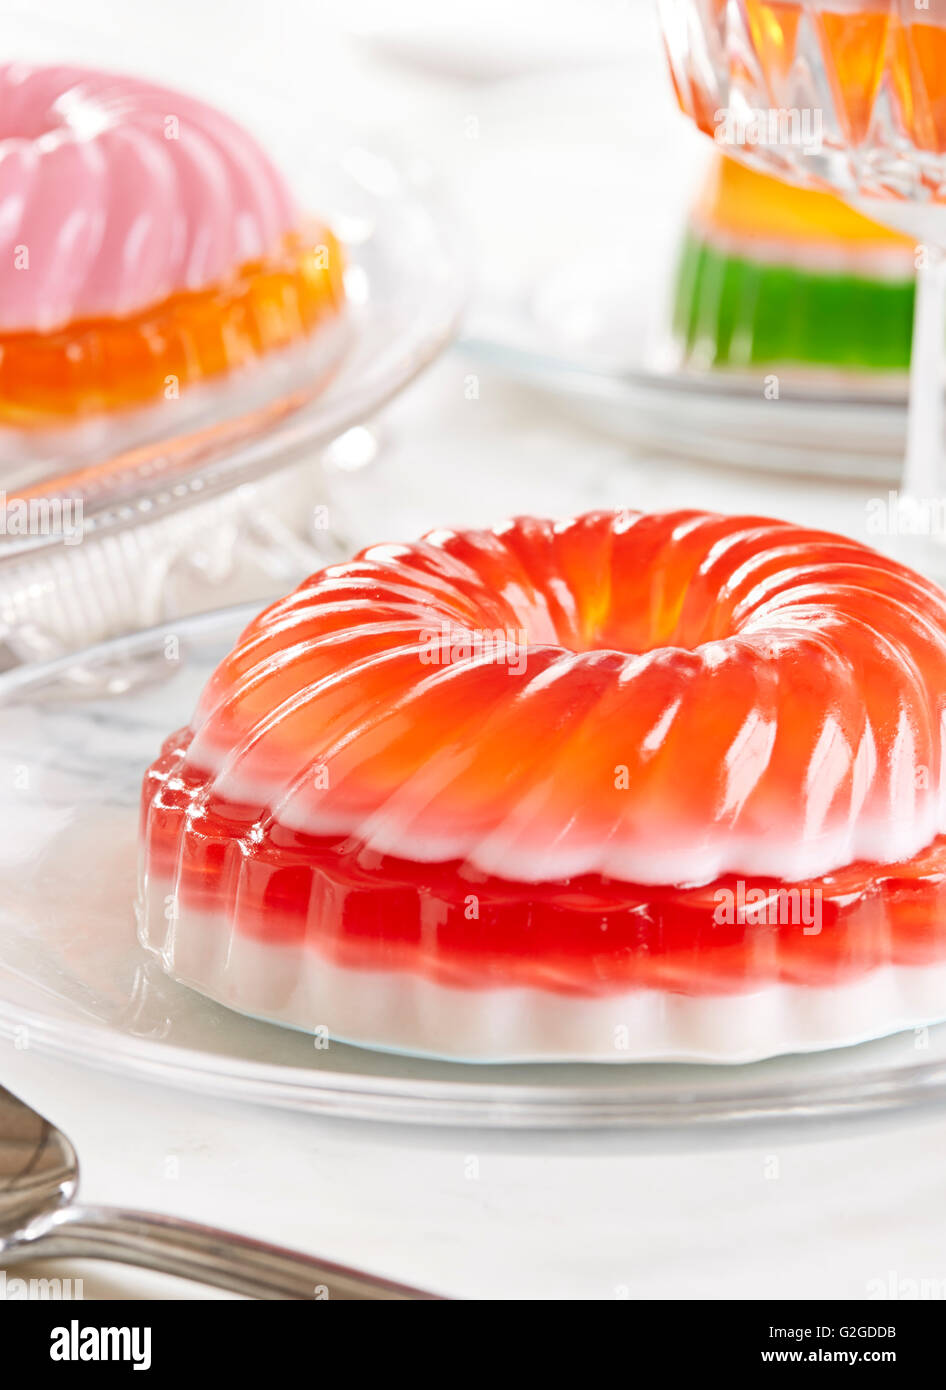 Jello Mold Party - Stock Image